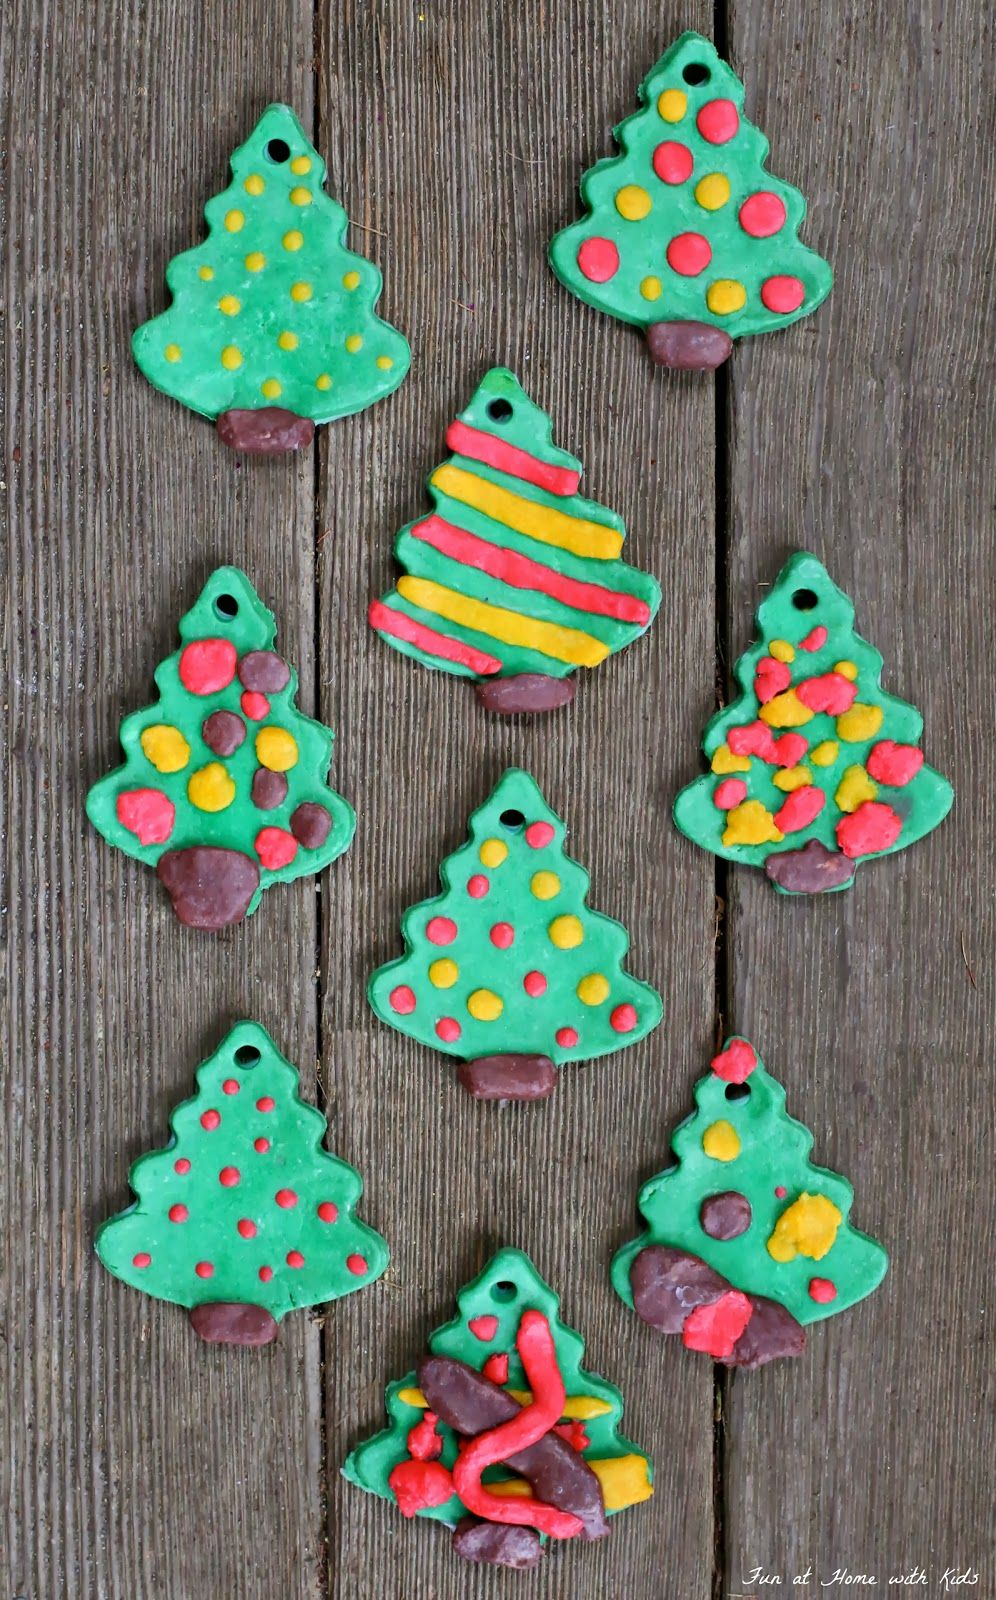 Diy Bread Clay Recipe For No Bake Ornaments Clay Ornaments Christmas Tree Template Christmas Crafts For Kids